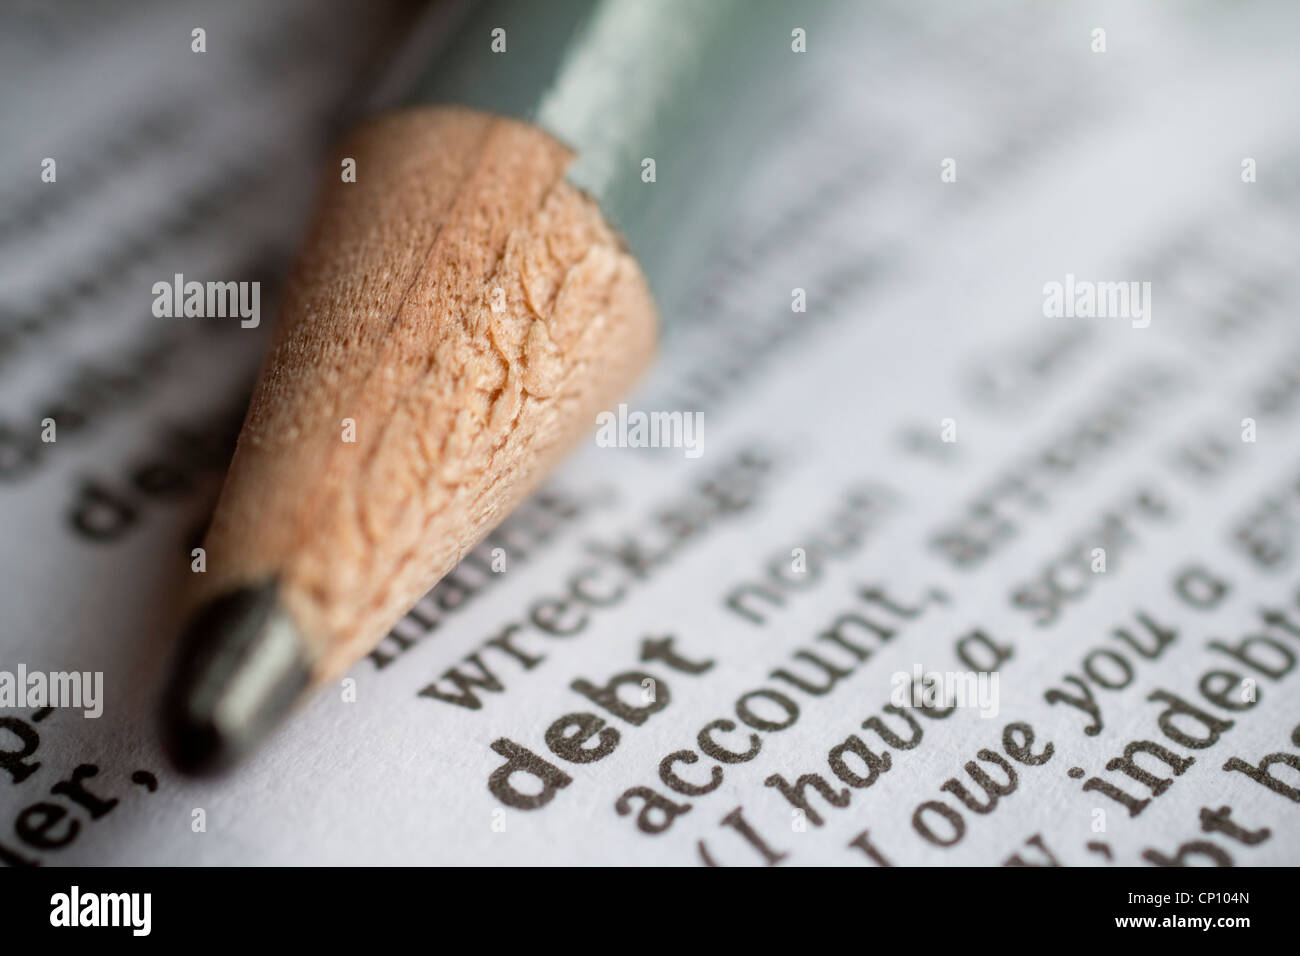 Debt the word debt in dictionary with pencil Stock Photo